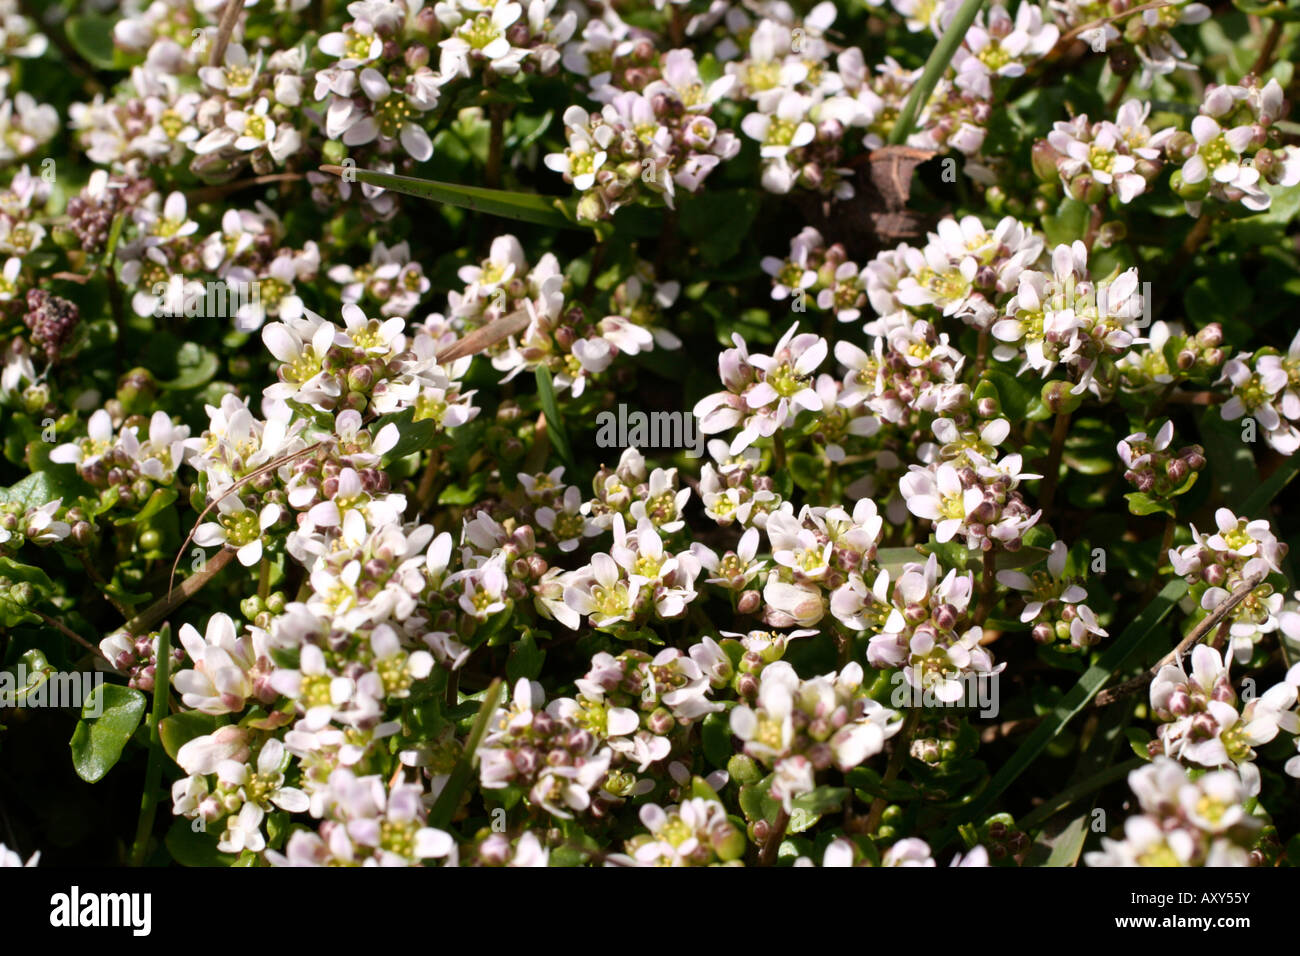 Scurvy Grass Stock Photos & Scurvy Grass Stock Images - Alamy